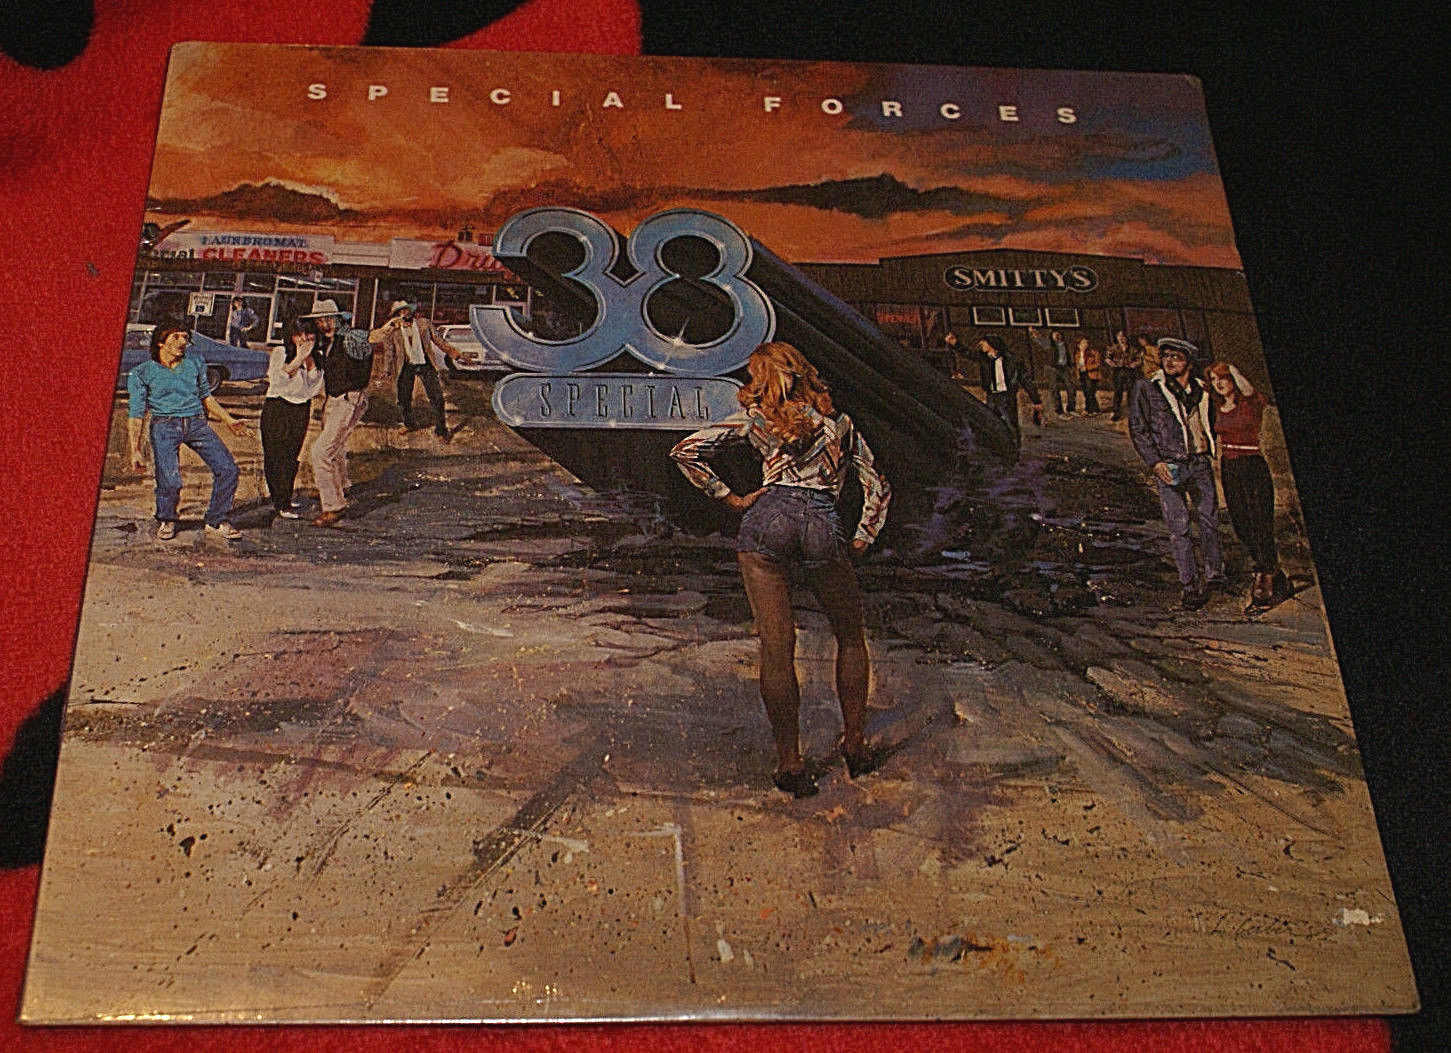 .38 Special Special Forces 1982 LP Record Album - SP-04888 New Sealed Oop